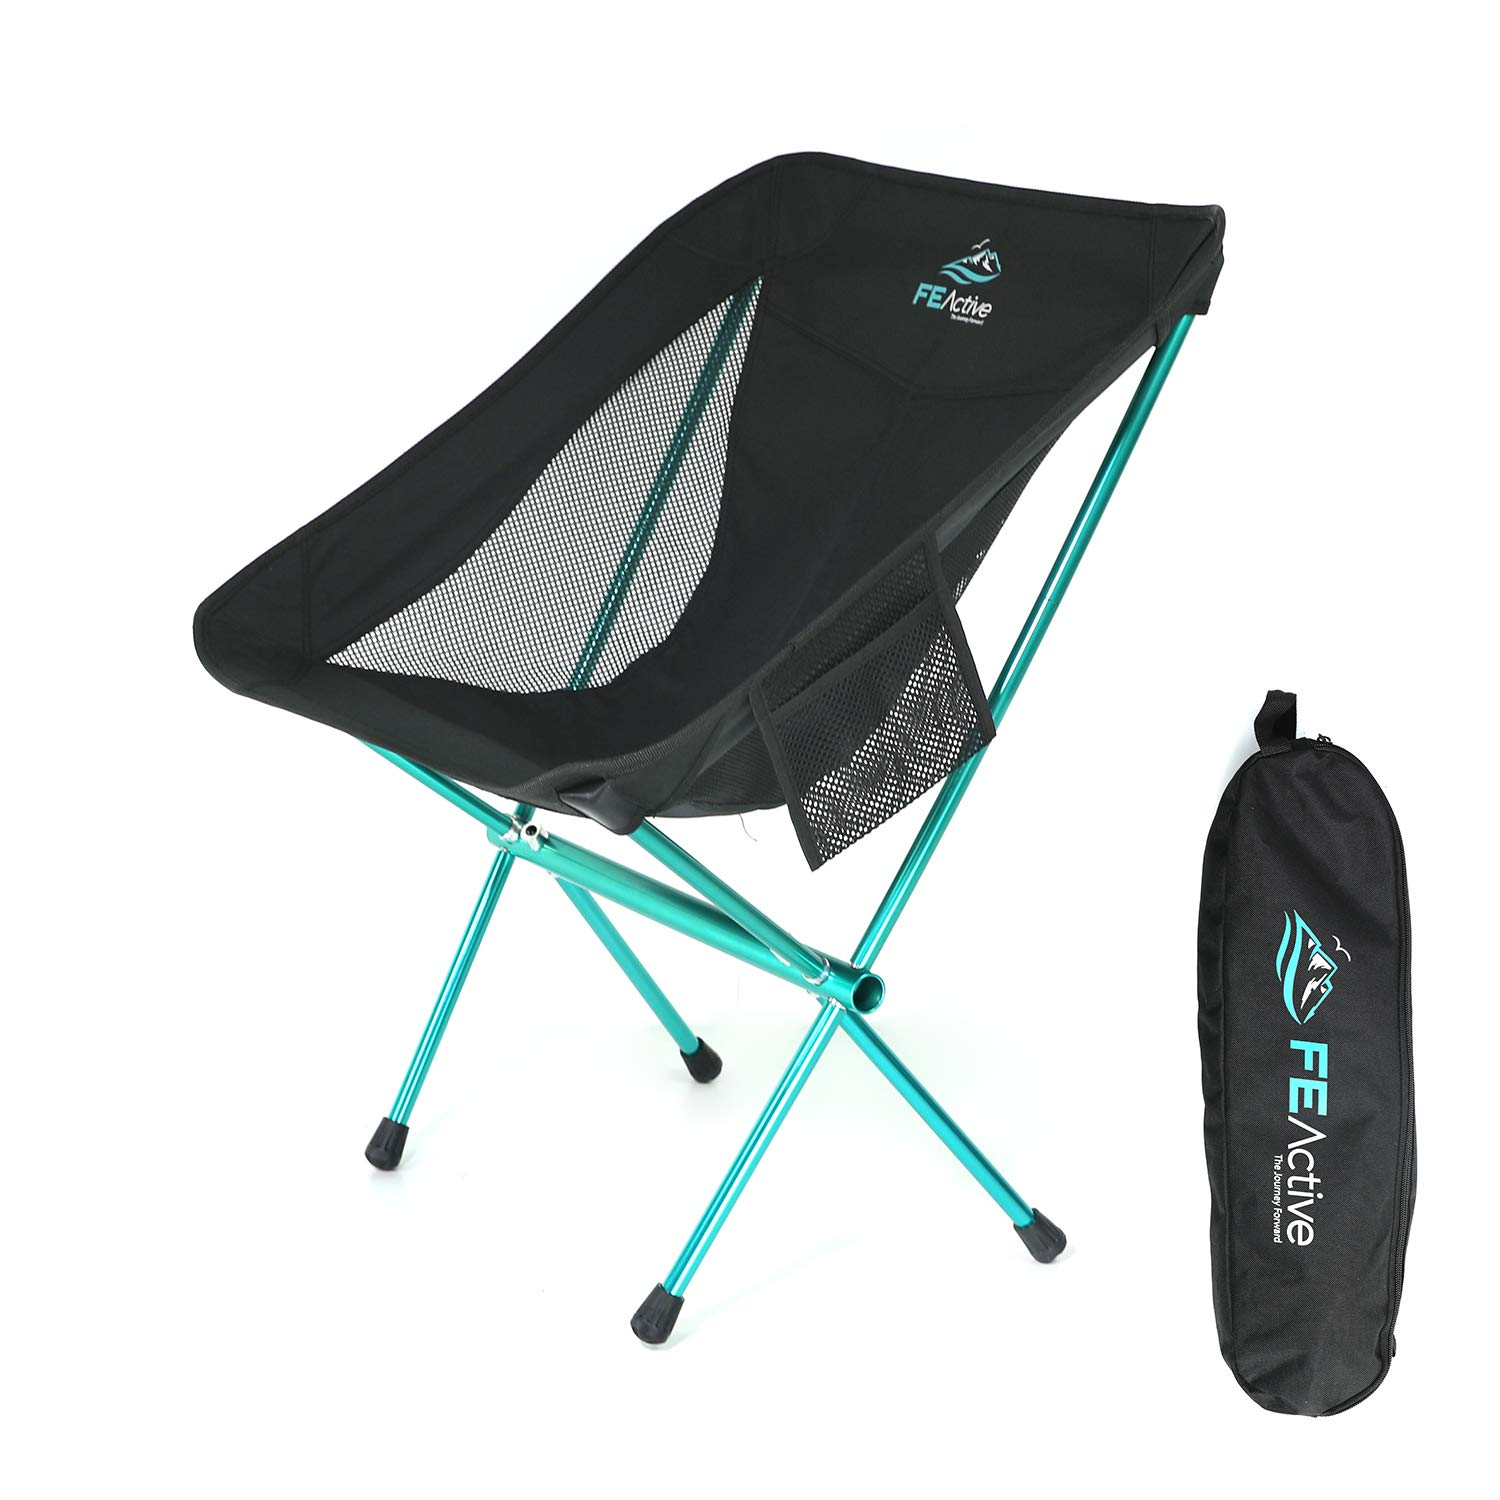 FE Active – Compact Folding Chair Built with Full Aluminum Designed as Ultralight Portable Camping Chair for Beach, Hiking, Trekking, Backpacking, Camping, Sports Games Designed in California, USA